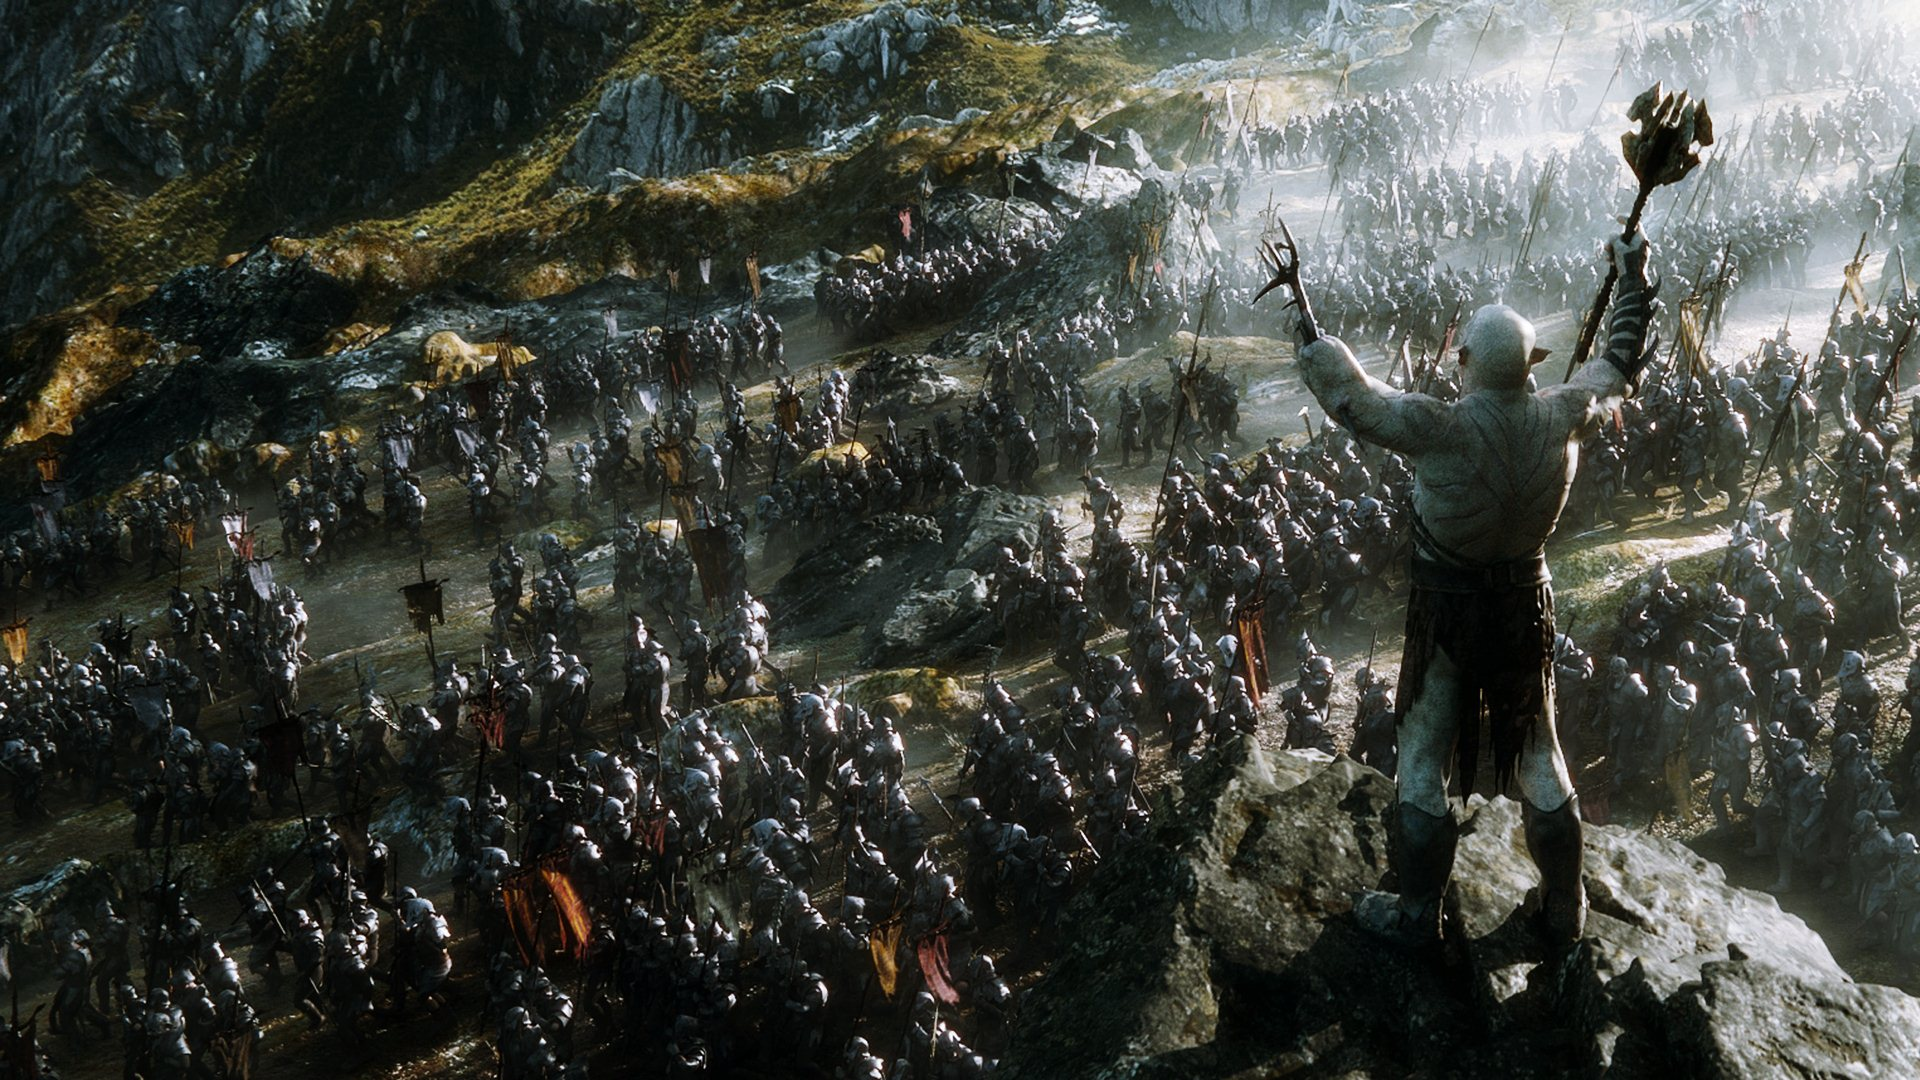 15 Minutes Of Additional Battle Footage For The Hobbit: The Battle Of The Five Armies Extended Edition